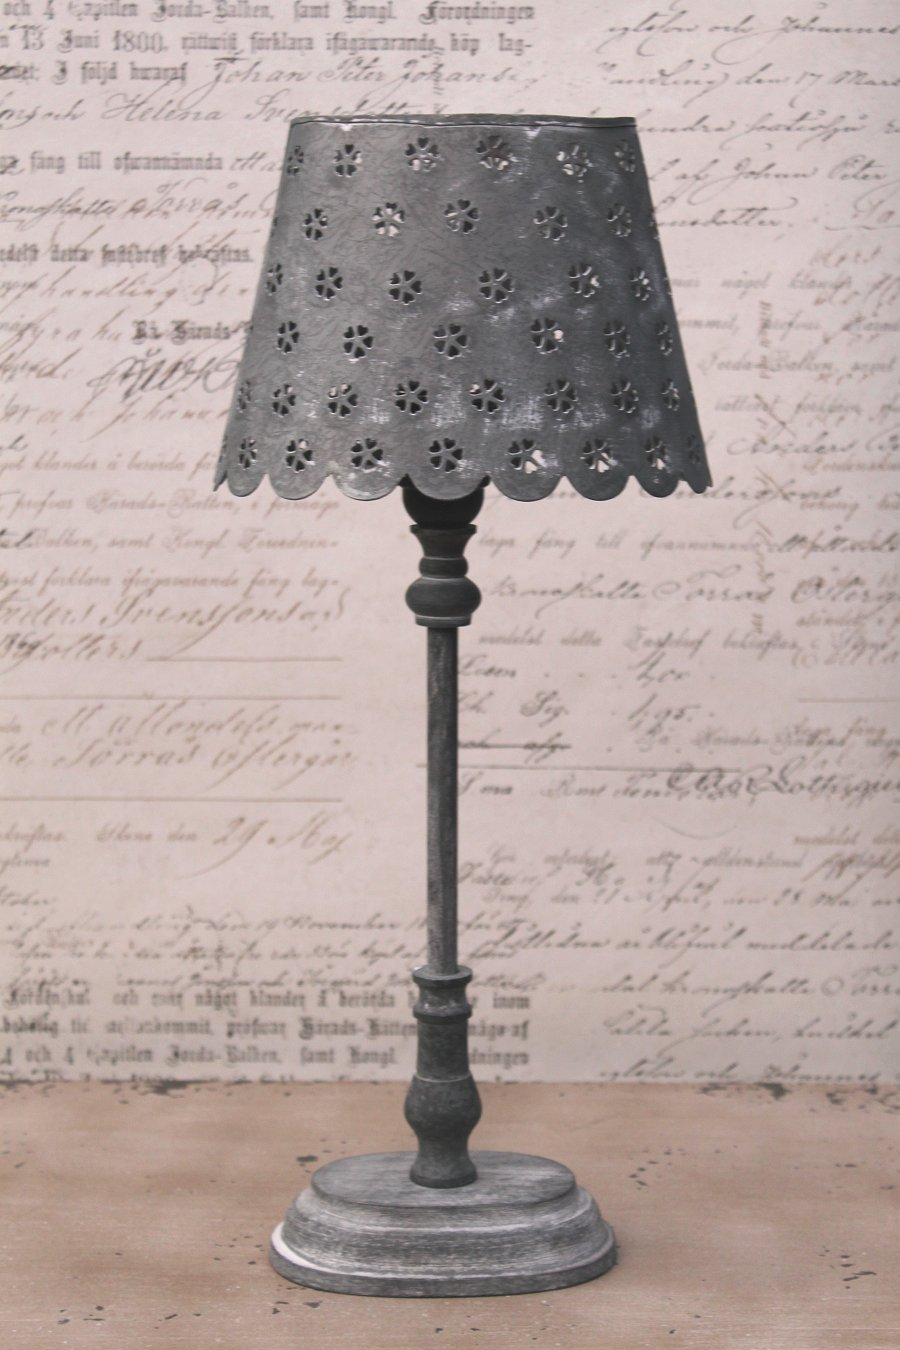 zink lampe tischlampe metall nachttischlampe antik shabby vintage landhaus grau ebay. Black Bedroom Furniture Sets. Home Design Ideas